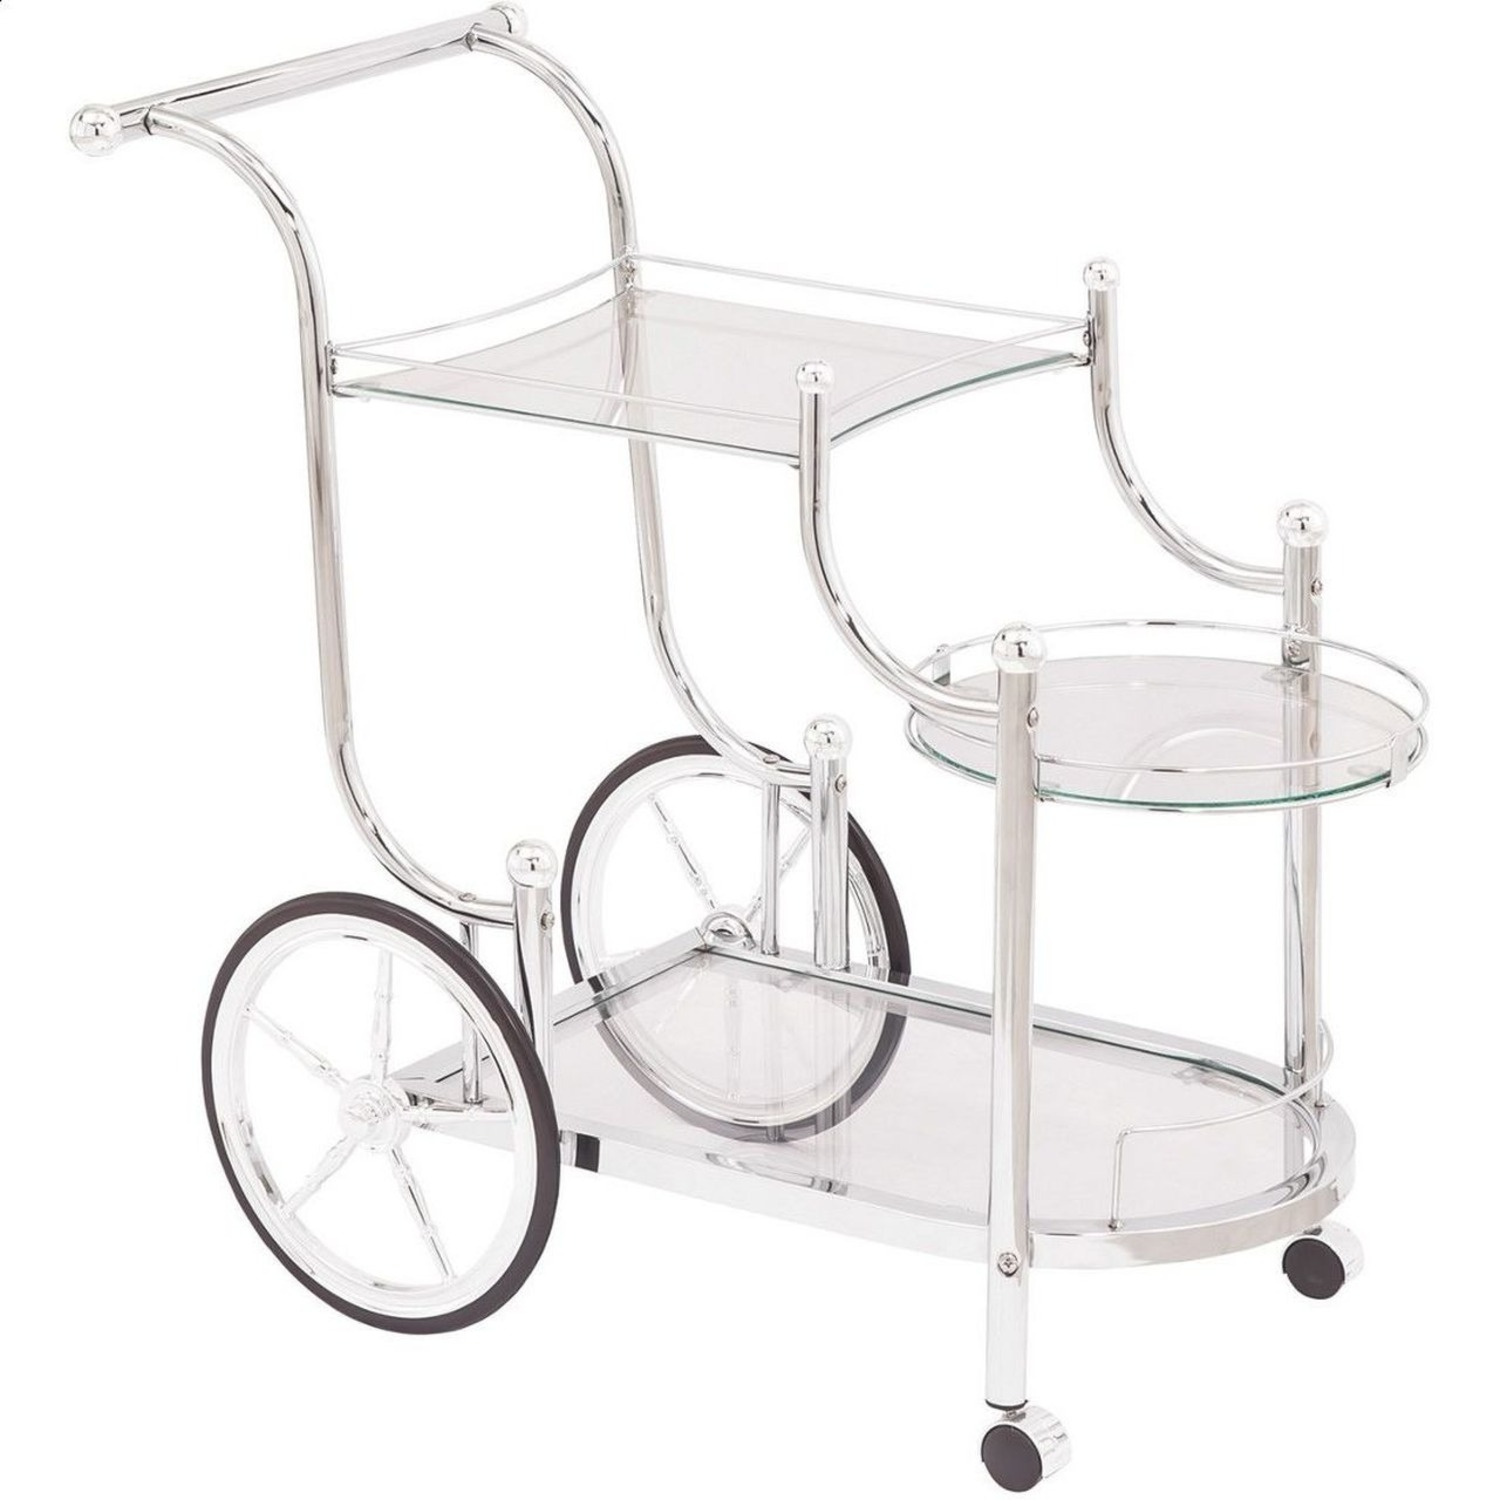 Serving Cart In Chrome Finish W/ Tempered Glass - image-1